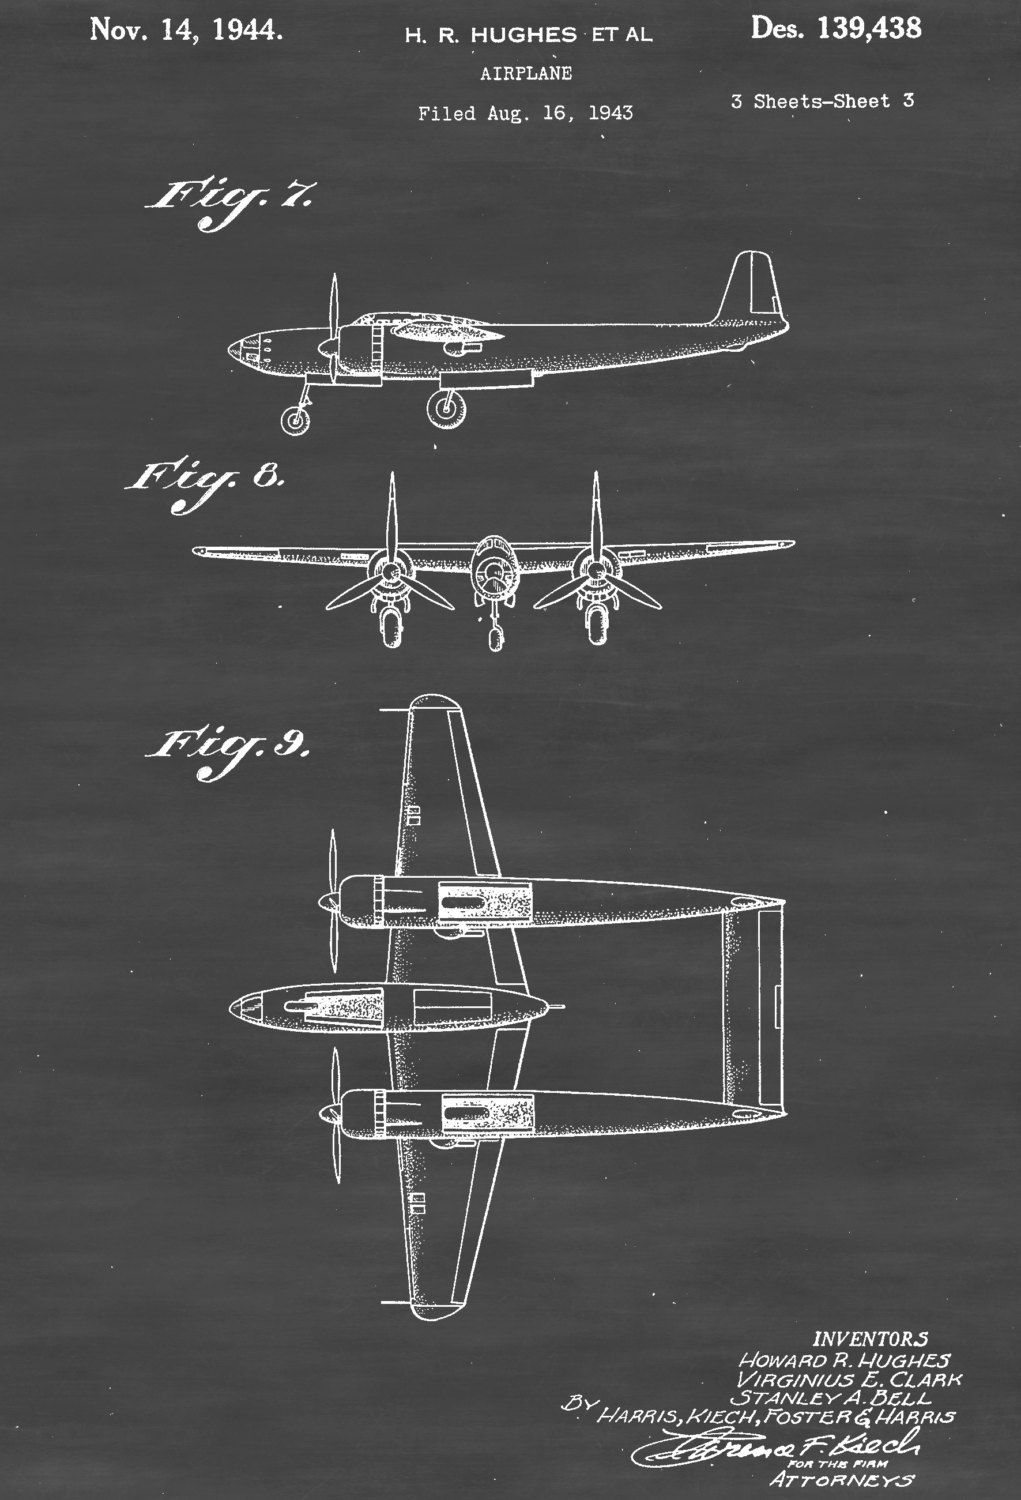 Lockheed xp 58 airplane patent vintage aviation art airplane art lockheed xp 58 airplane patent vintage aviation art airplane art airplane blueprint malvernweather Image collections